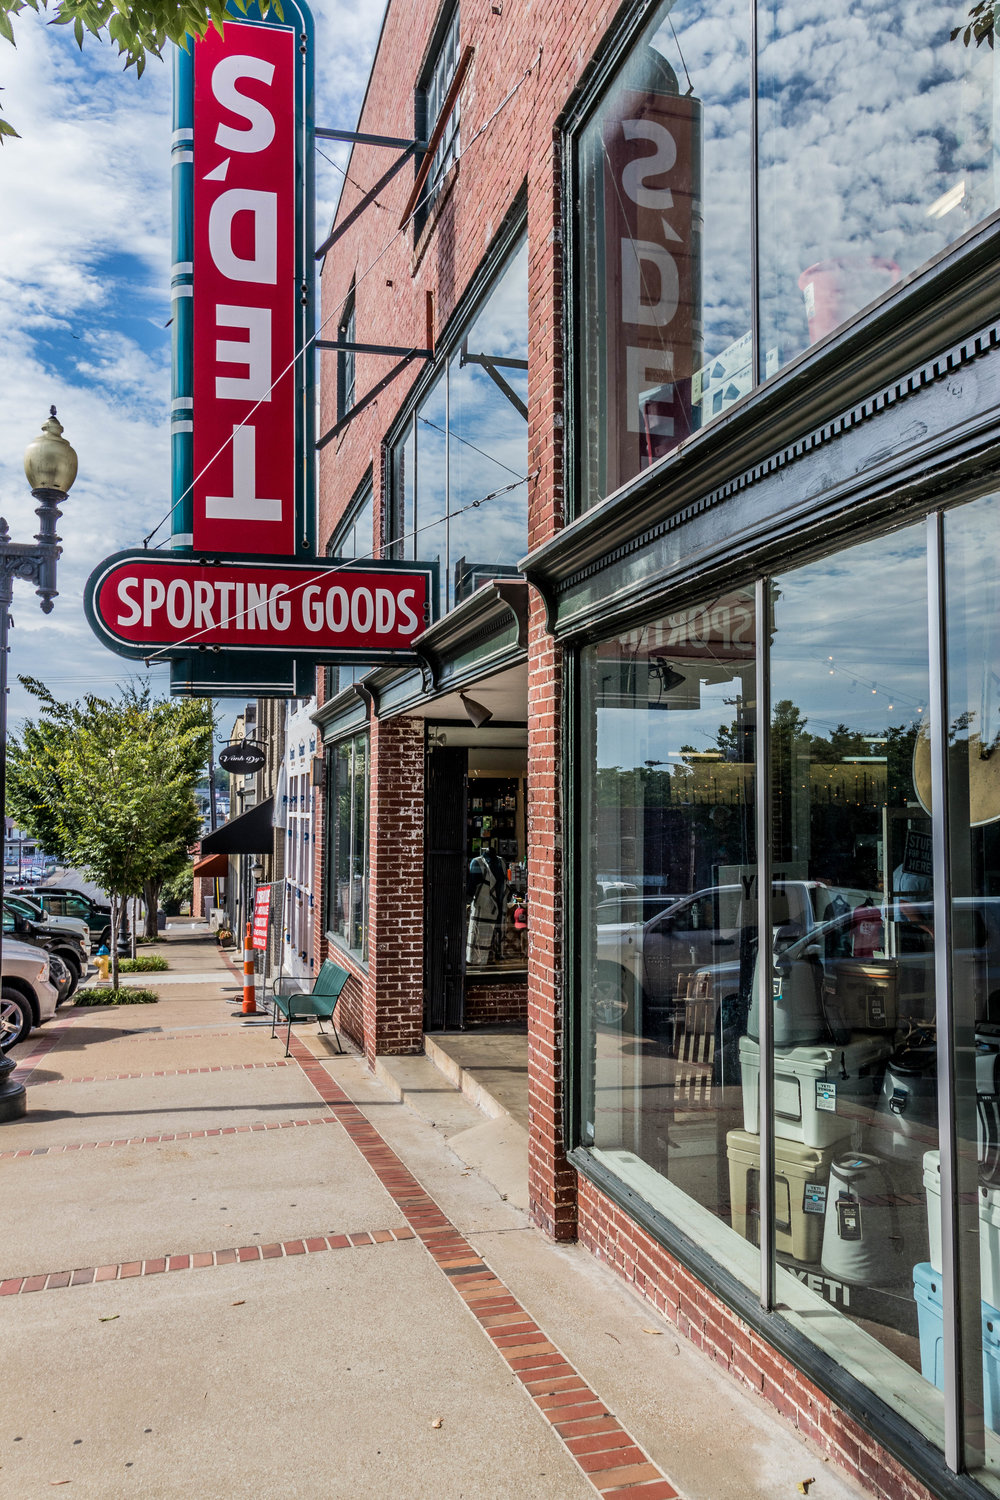 Ted's Sporting Goods